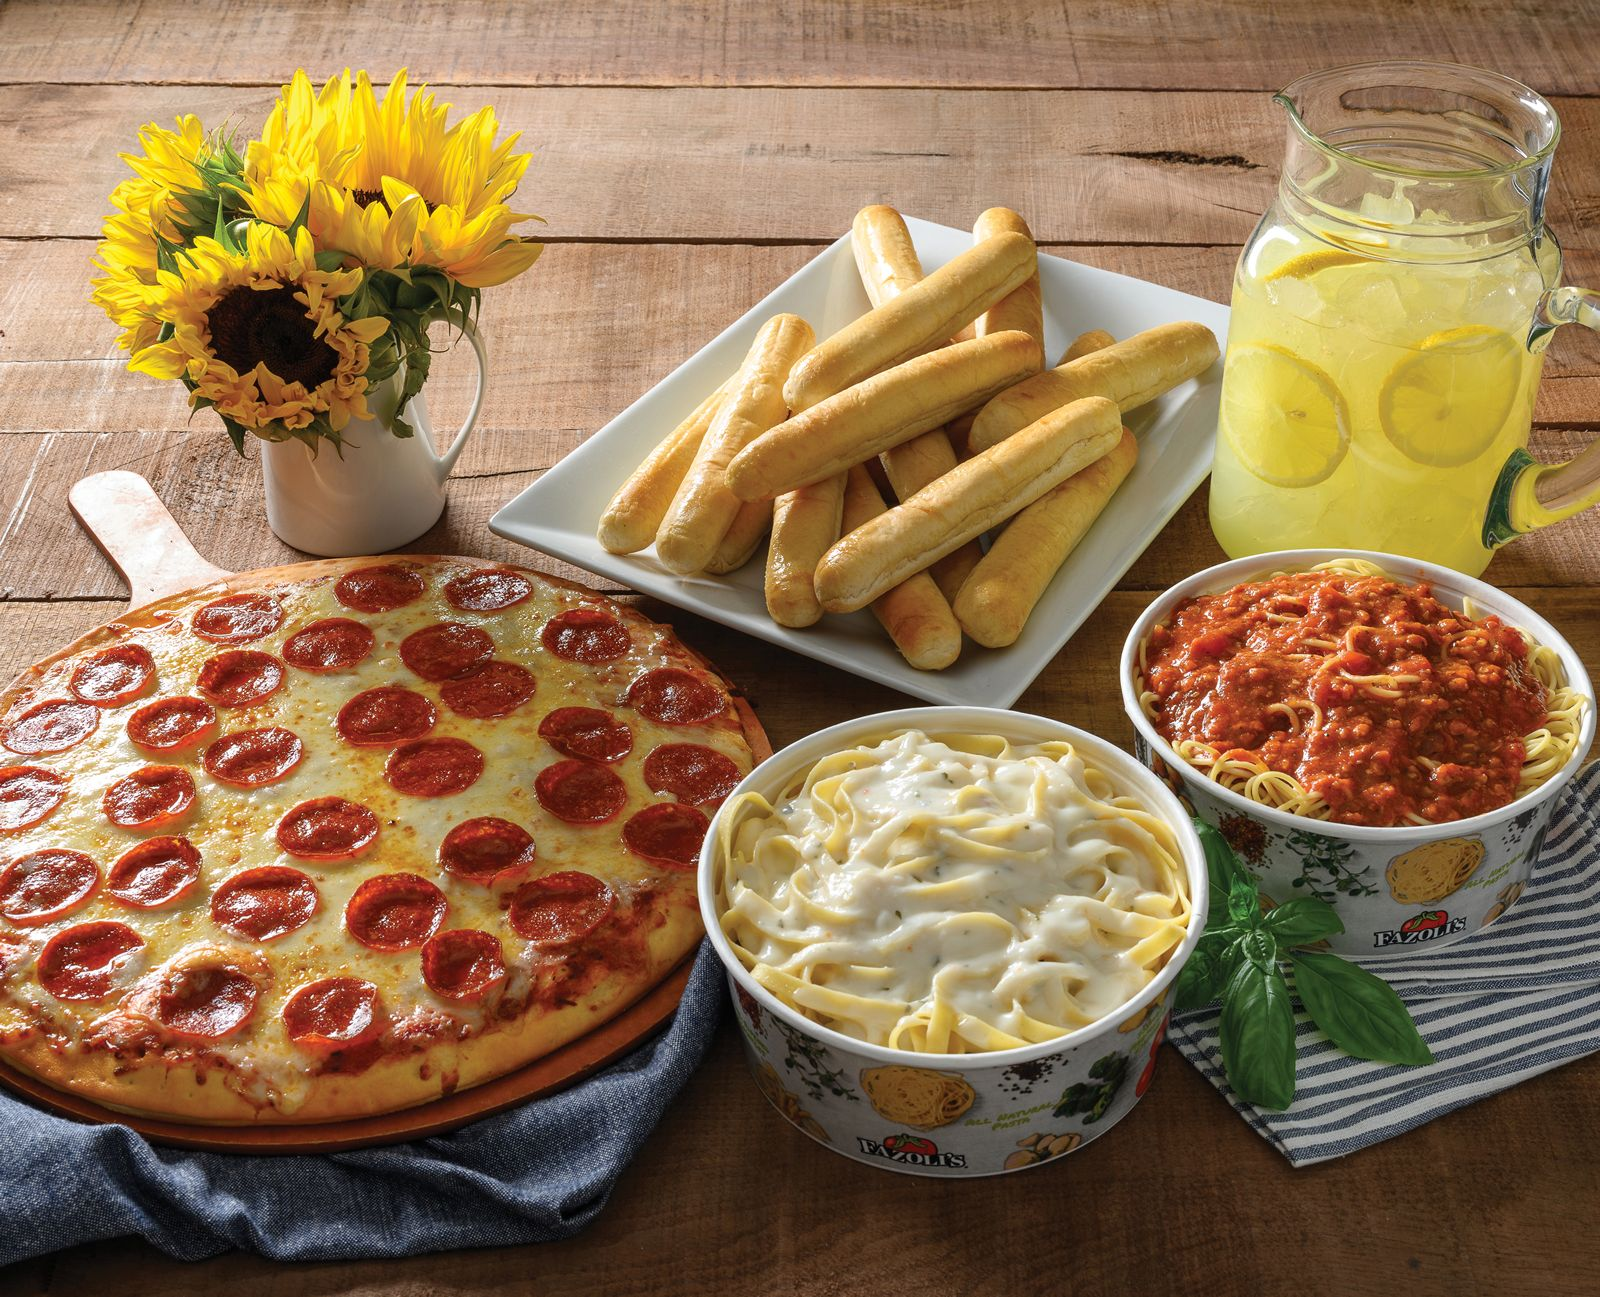 Fazoli's Continues to Yield All-Time High Sales with May Hitting 18% Increase YOY and 30% Over 2019